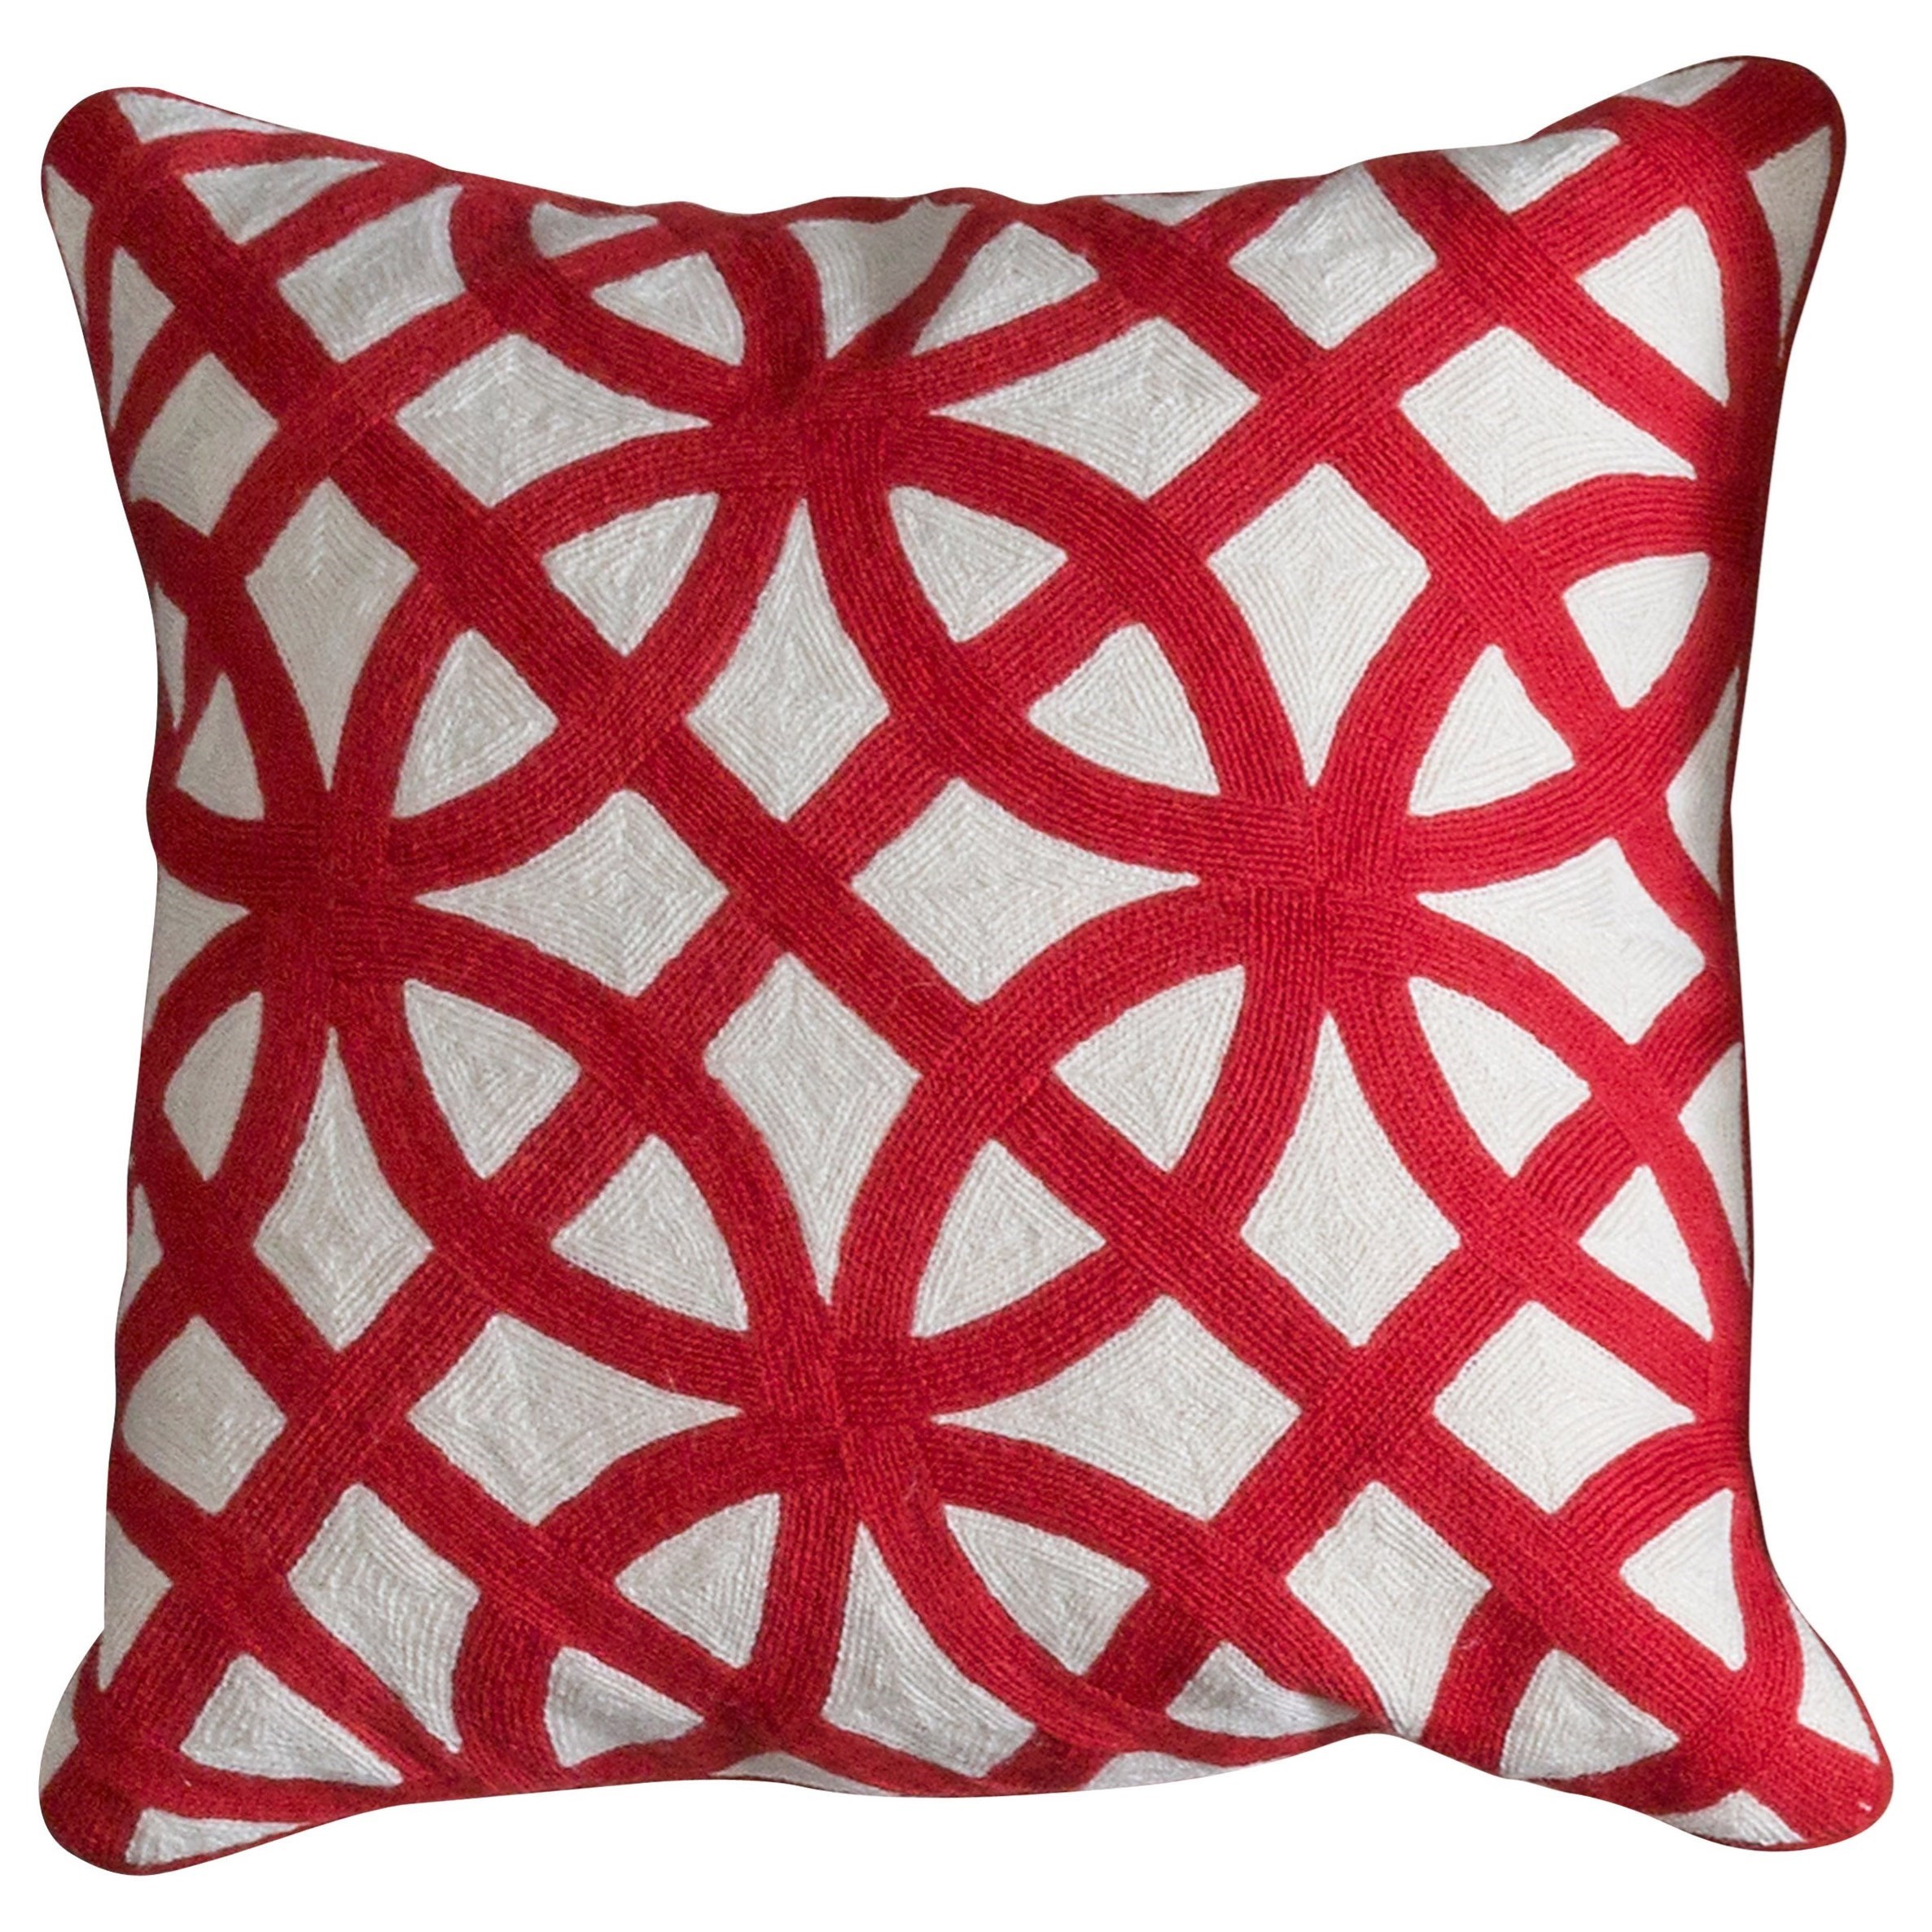 stylecraft accessories patterned red